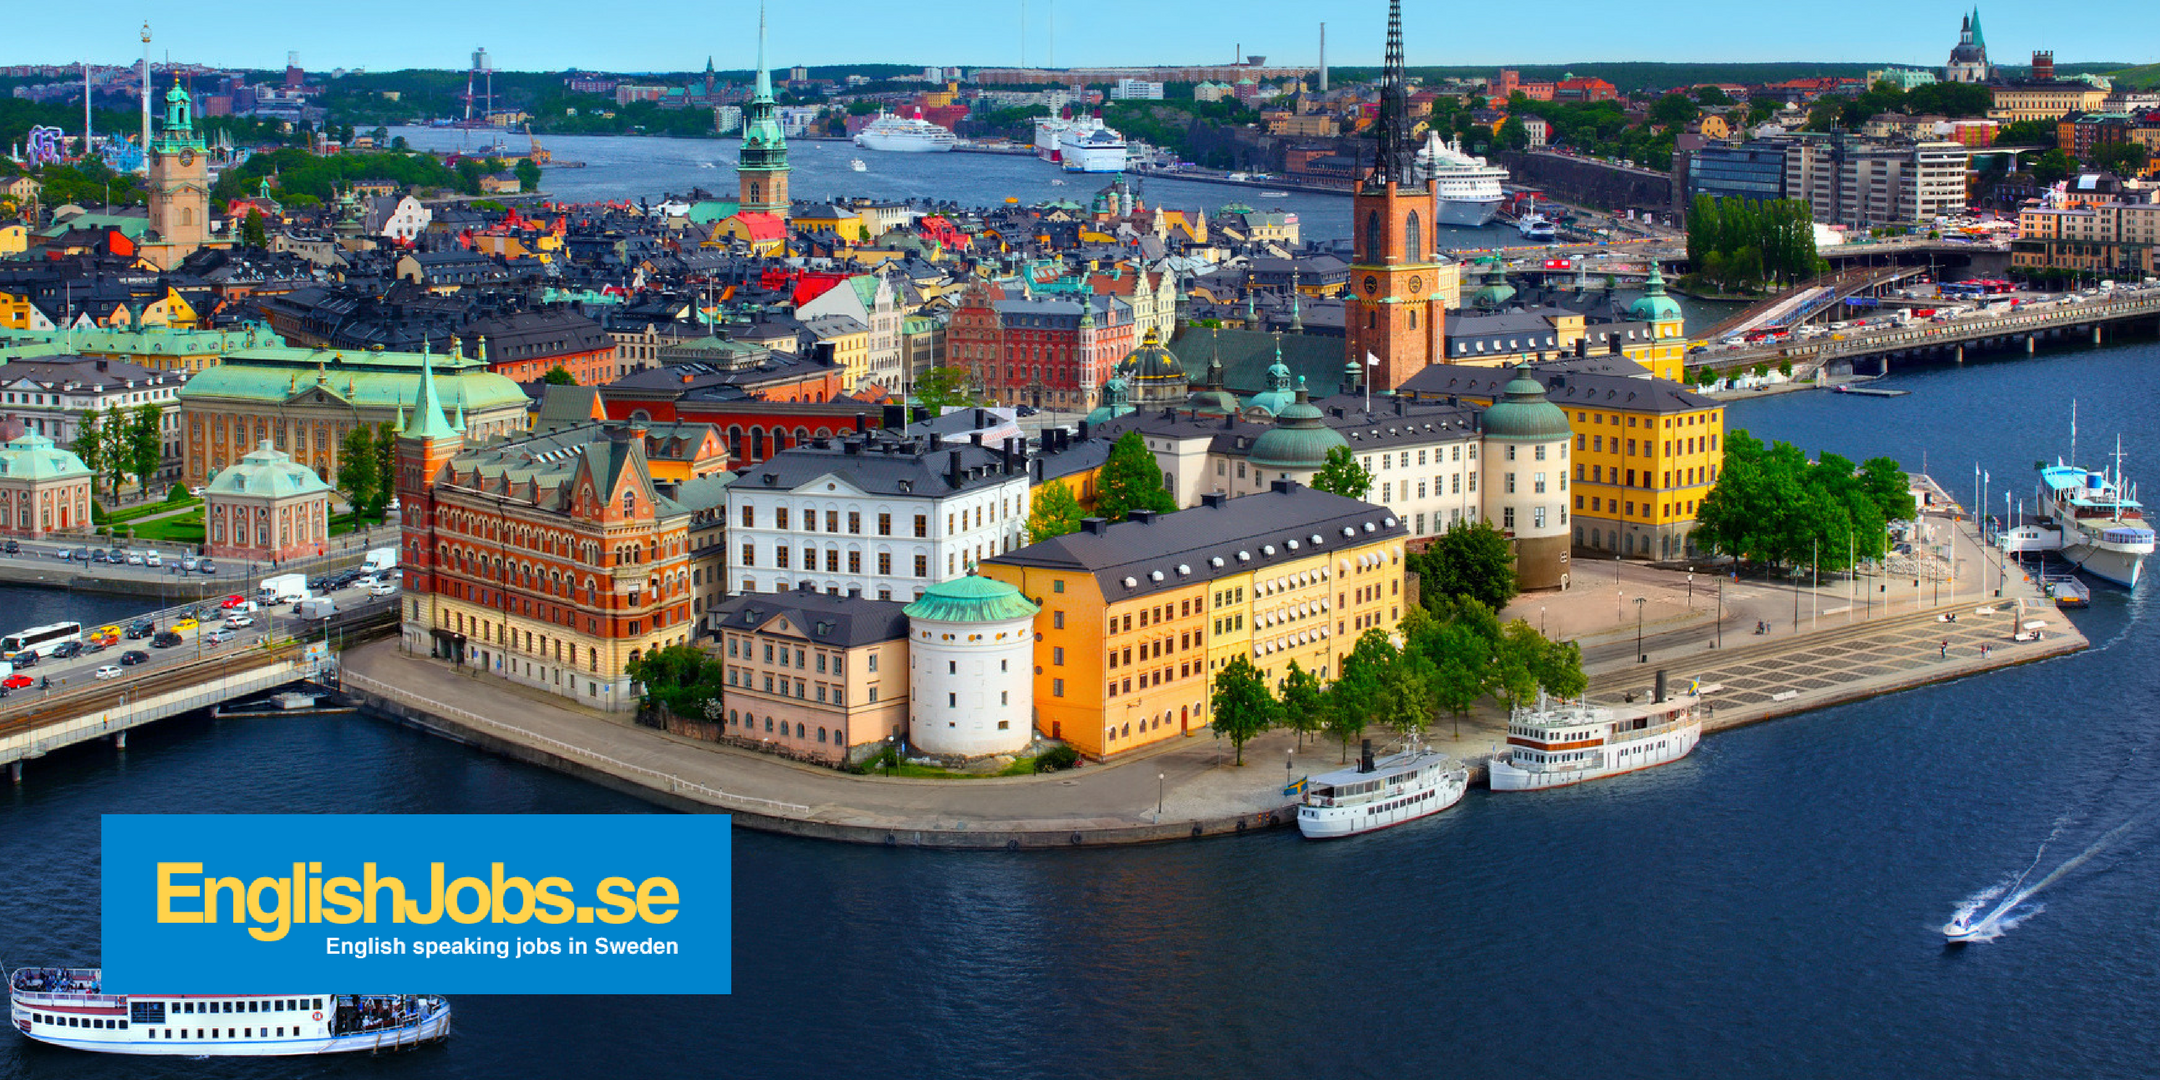 Work in Europe (Sweden, Denmark, Germany) - Your job search from Toronto to Stockholm